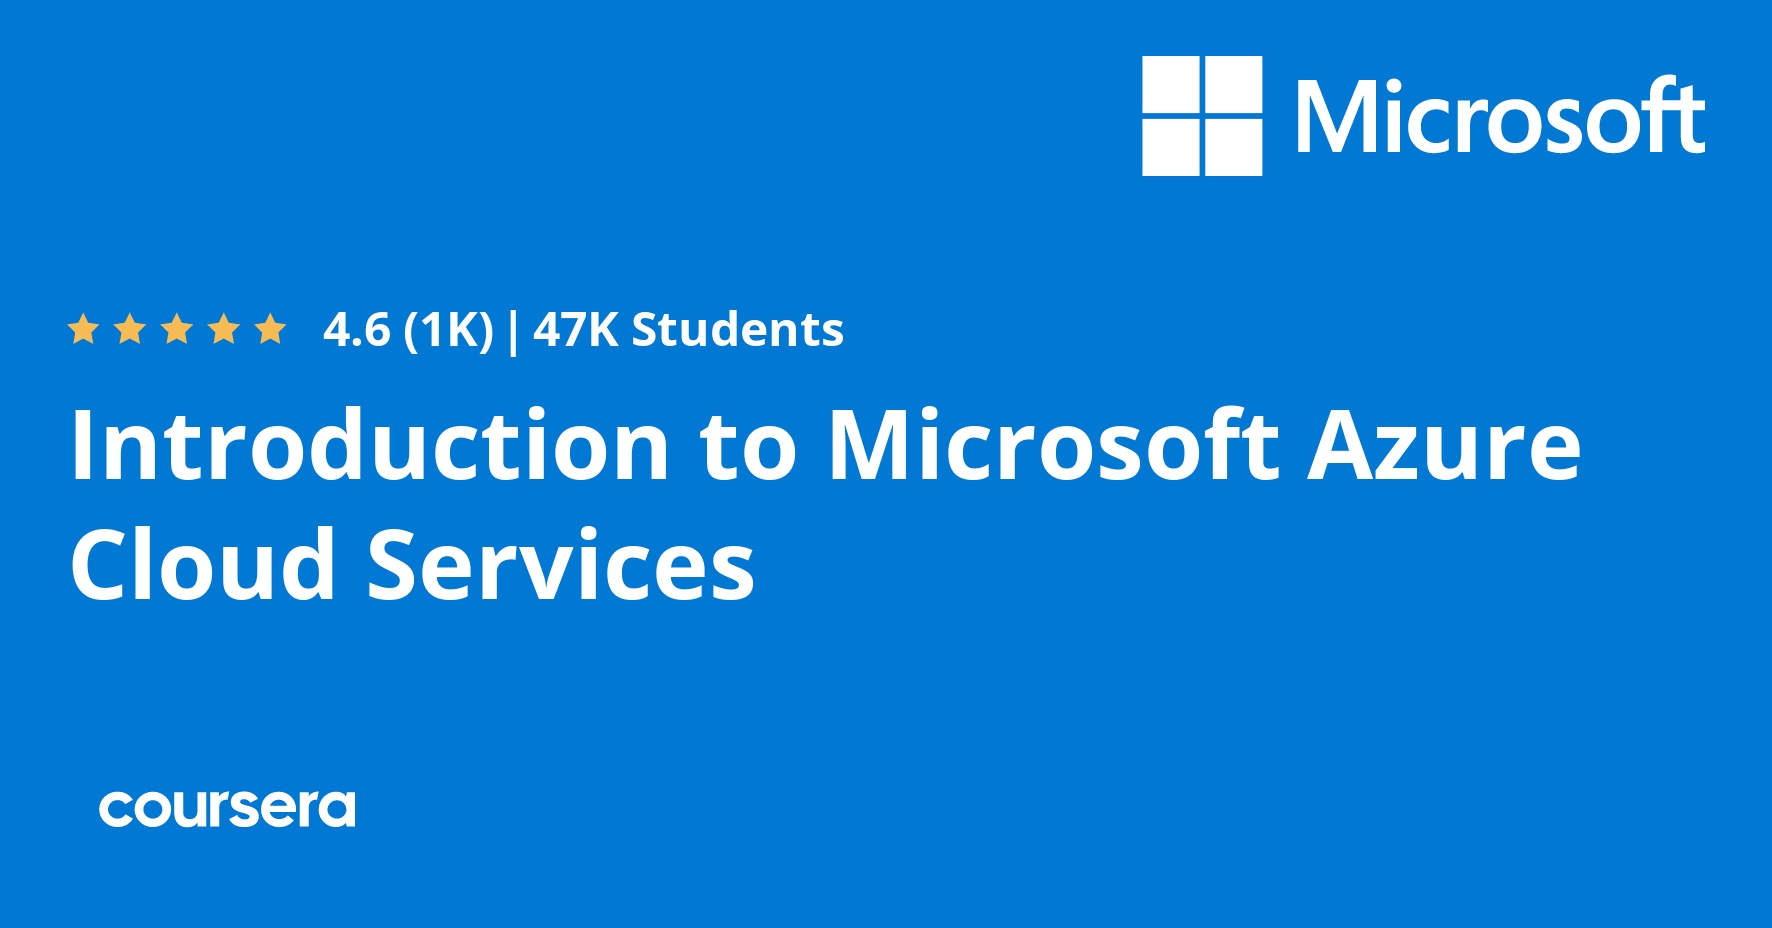 free online courses for https://s3.amazonaws.com/coursera_assets/meta_images/generated/XDP/XDP~COURSE!~microsoft-azure-cloud-services/XDP~COURSE!~microsoft-azure-cloud-services.jpeg